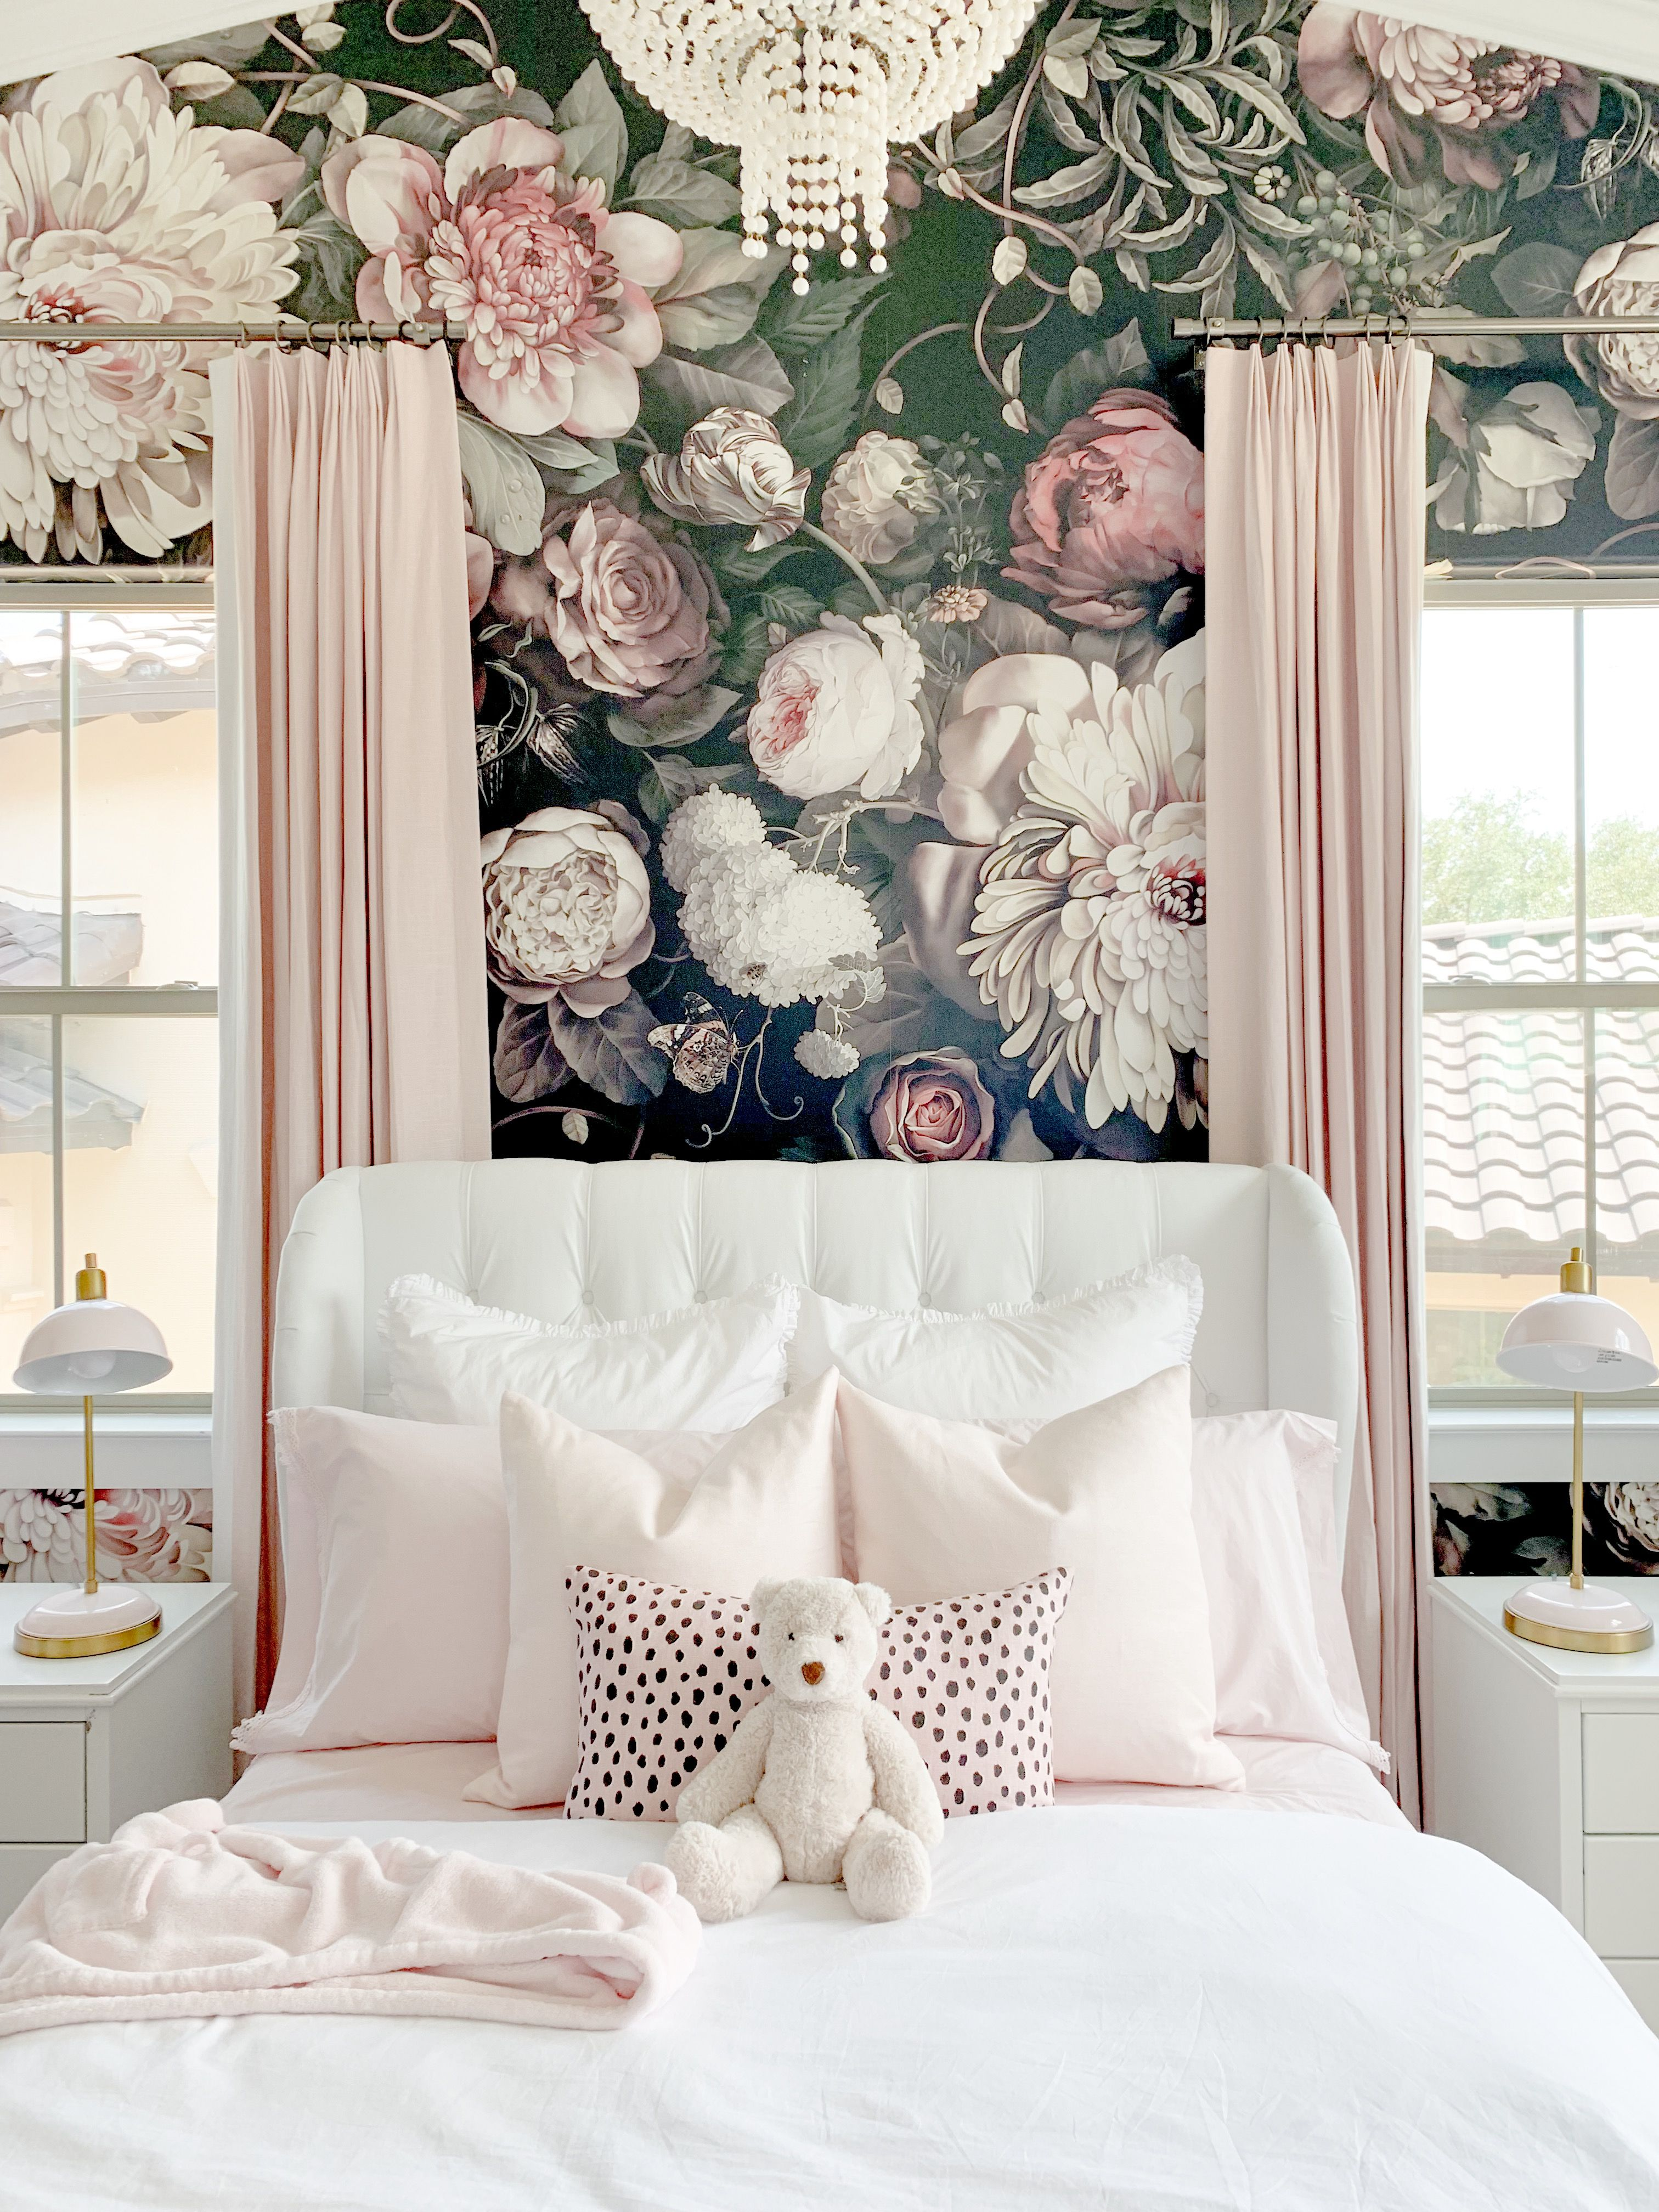 Blush Pink Bedroom With Floral Wallpaper A White Tufted Velvet